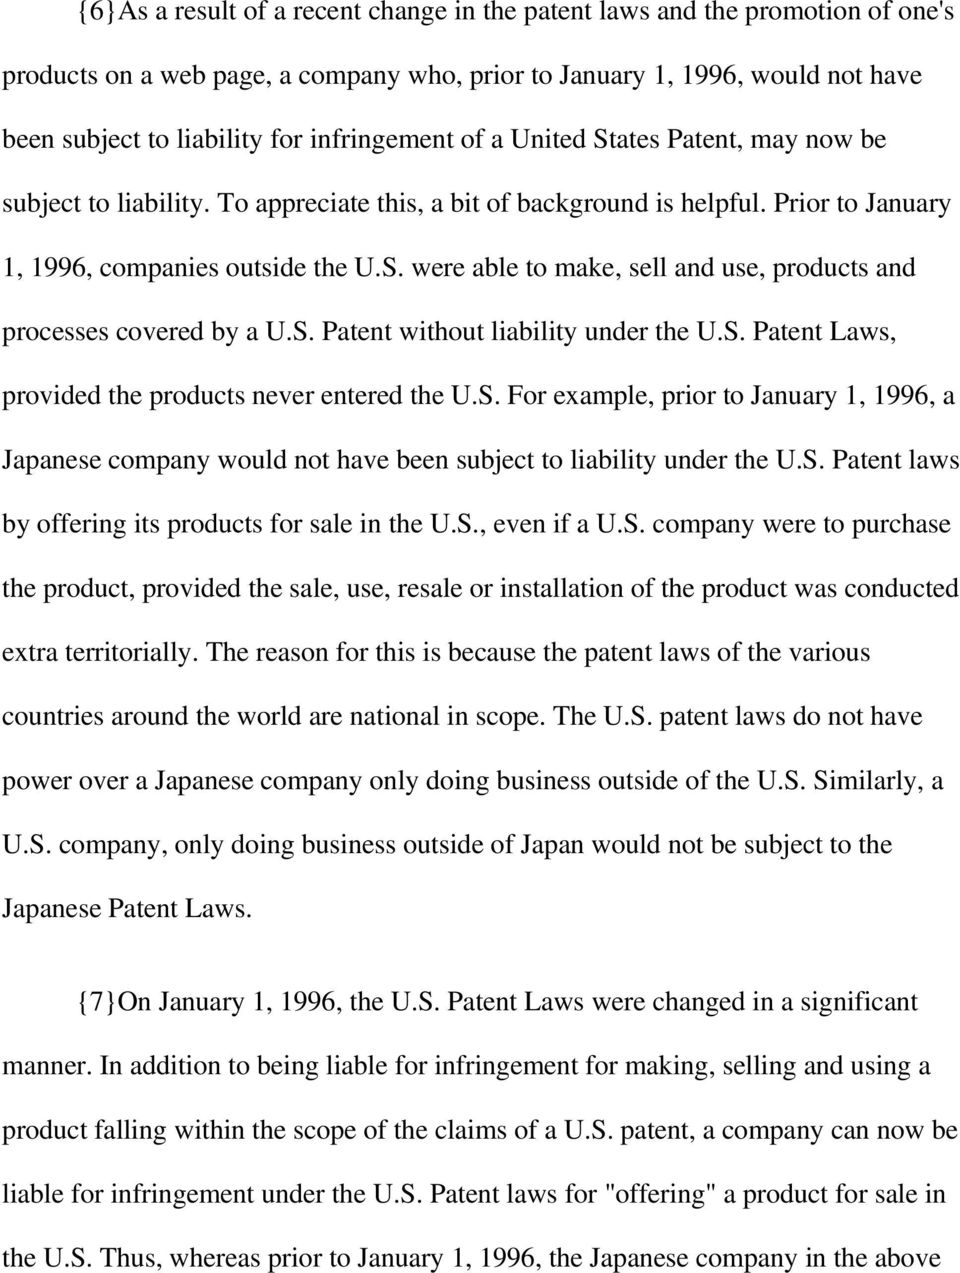 S. Patent without liability under the U.S. Patent Laws, provided the products never entered the U.S. For example, prior to January 1, 1996, a Japanese company would not have been subject to liability under the U.